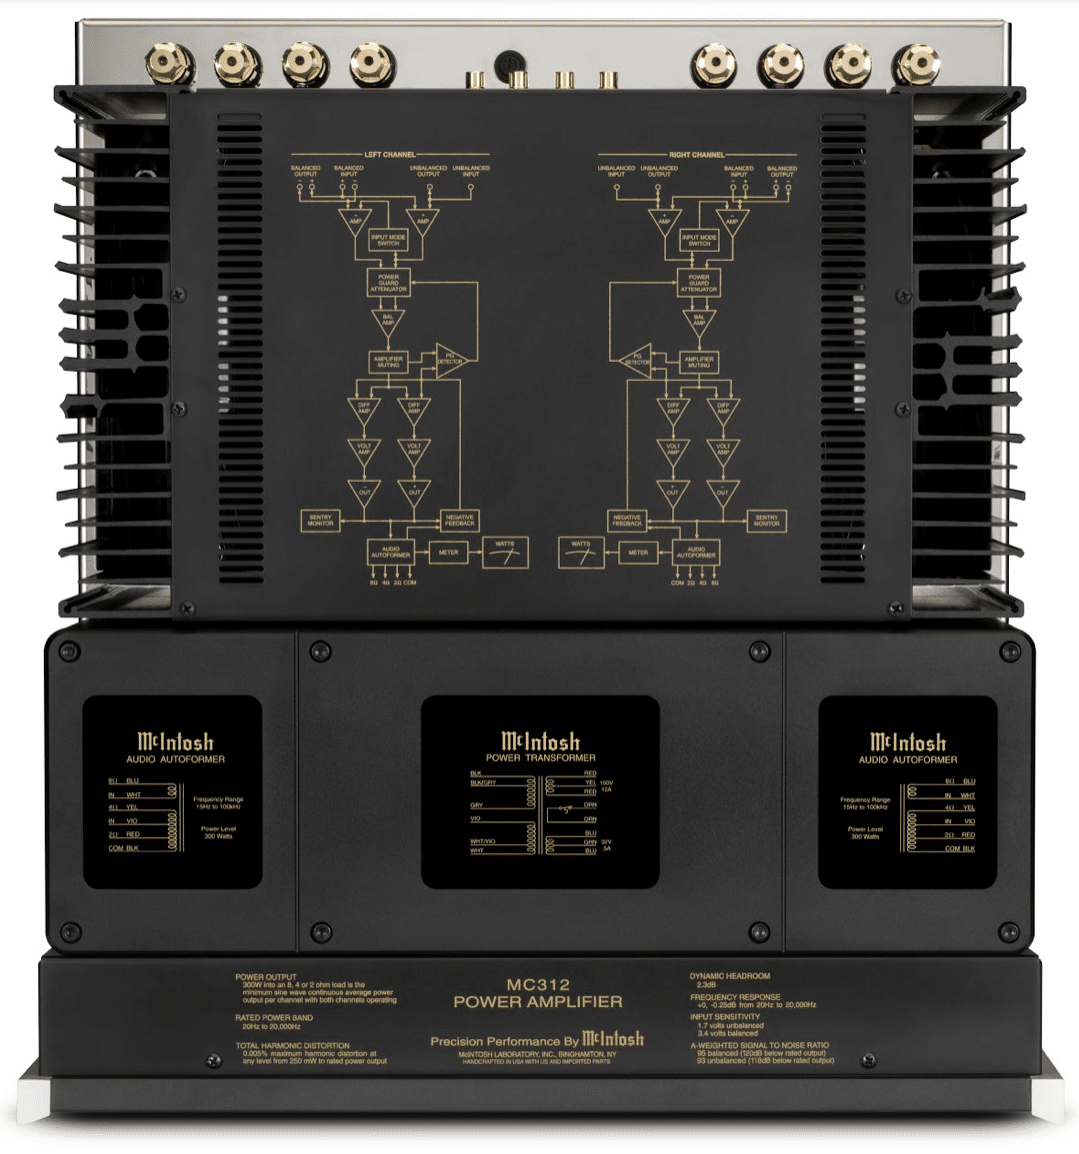 MC312 Stereo Power Amplifier From Mcintosh